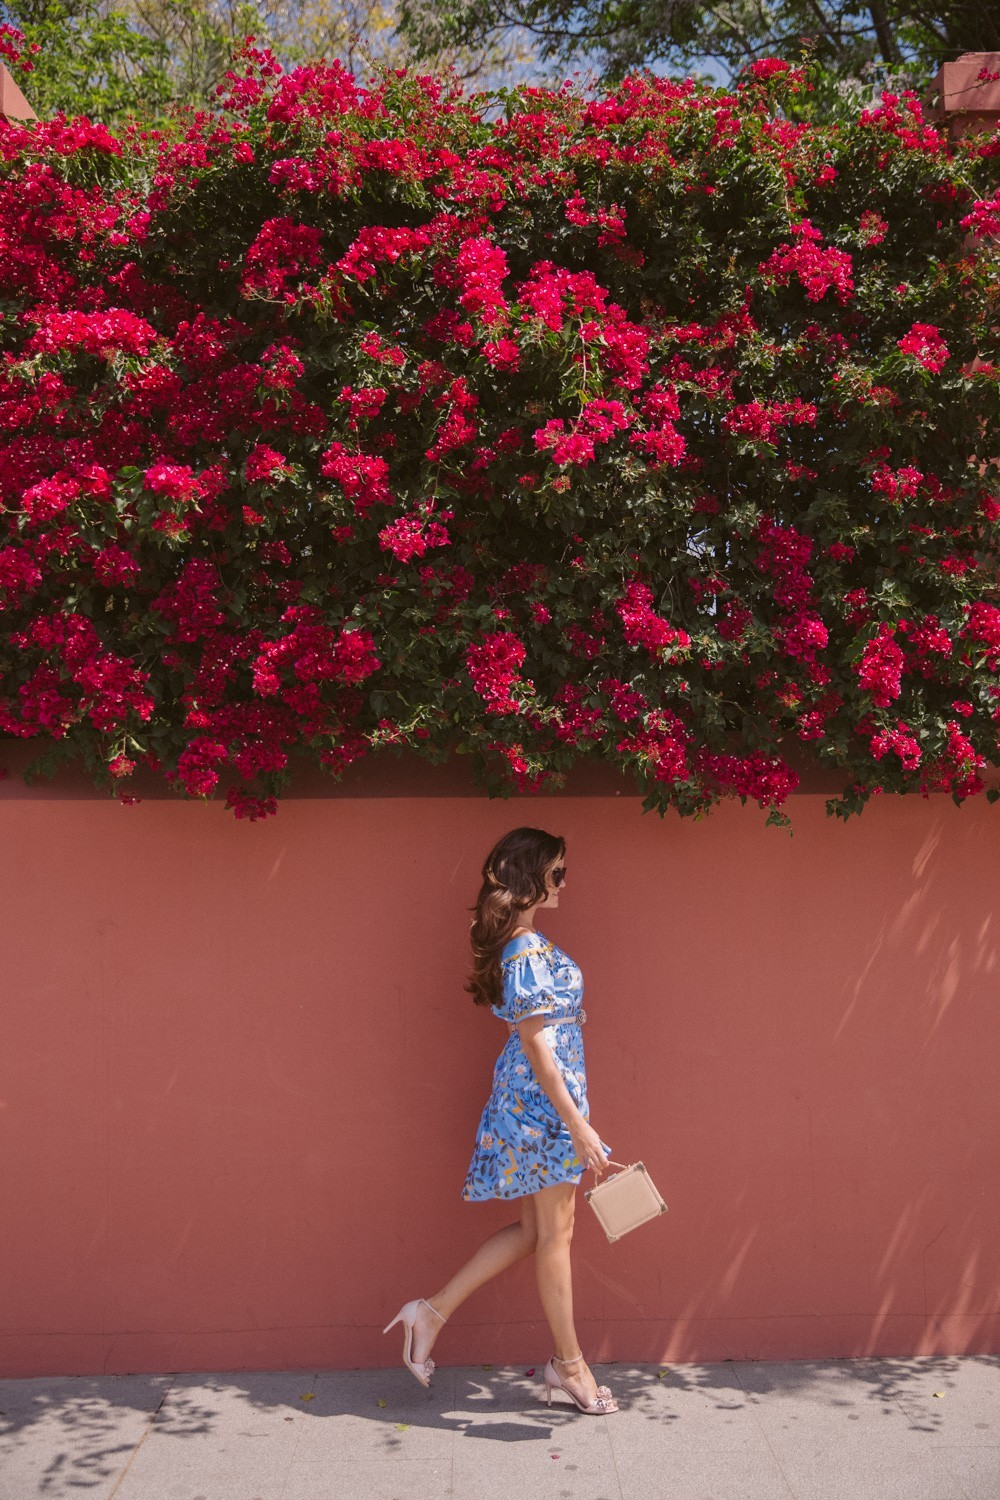 Spanish bougainvillea